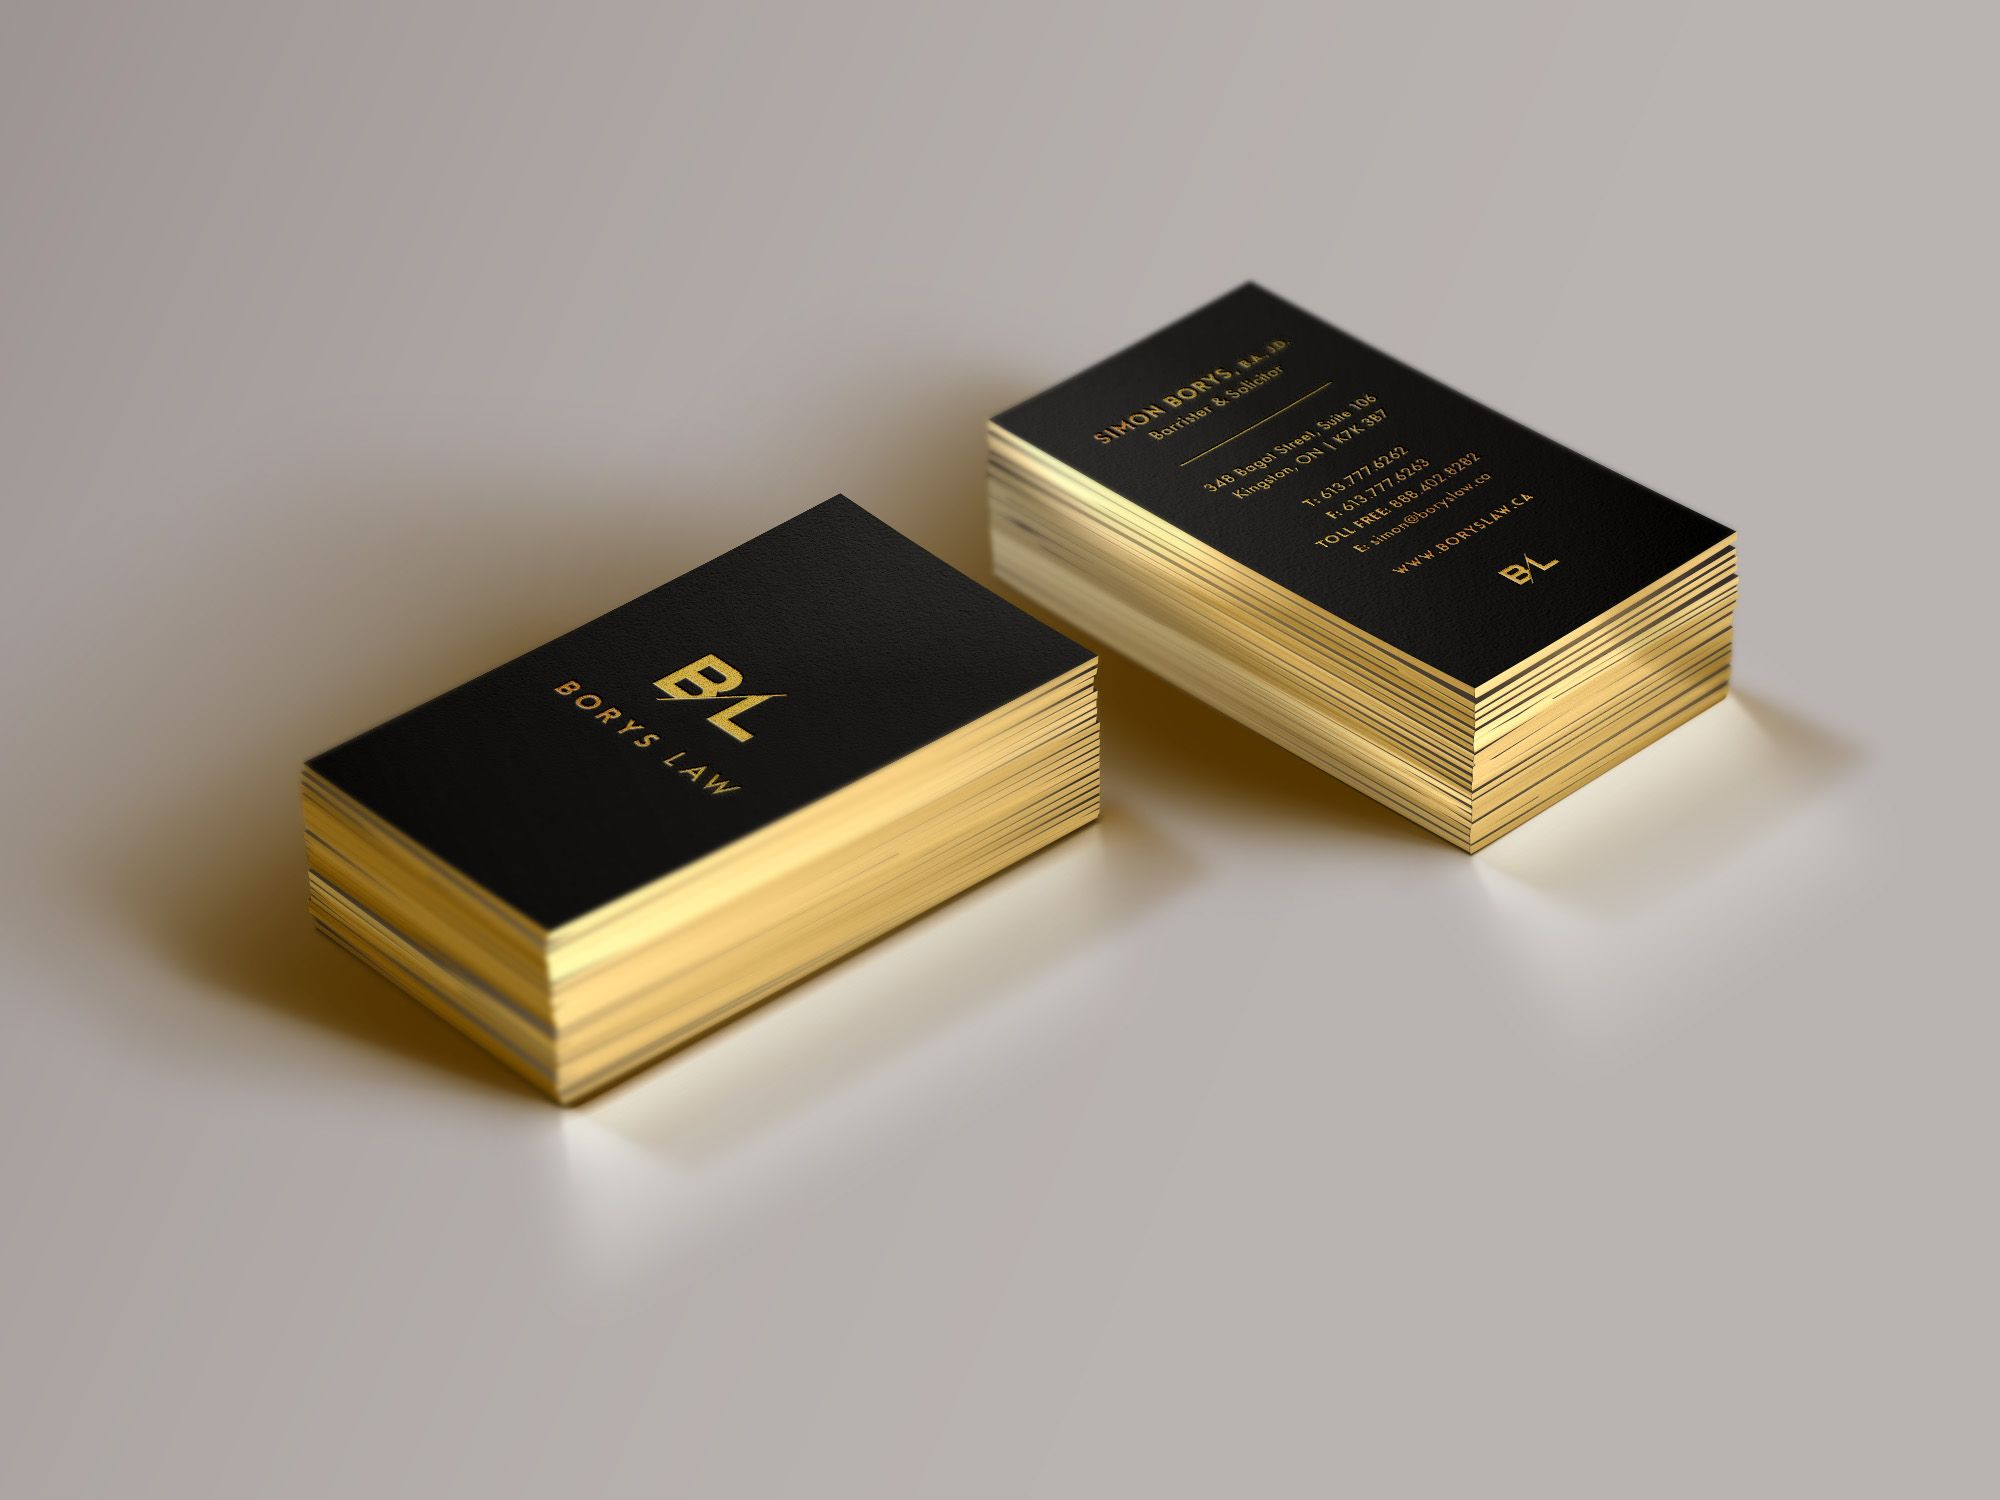 Law firm identity and business card design by curious ink logo cool los angeles business cards design studio hoodzpah did an a job with hip hop artist and producer duhrals branding we dont know what we love more colourmoves